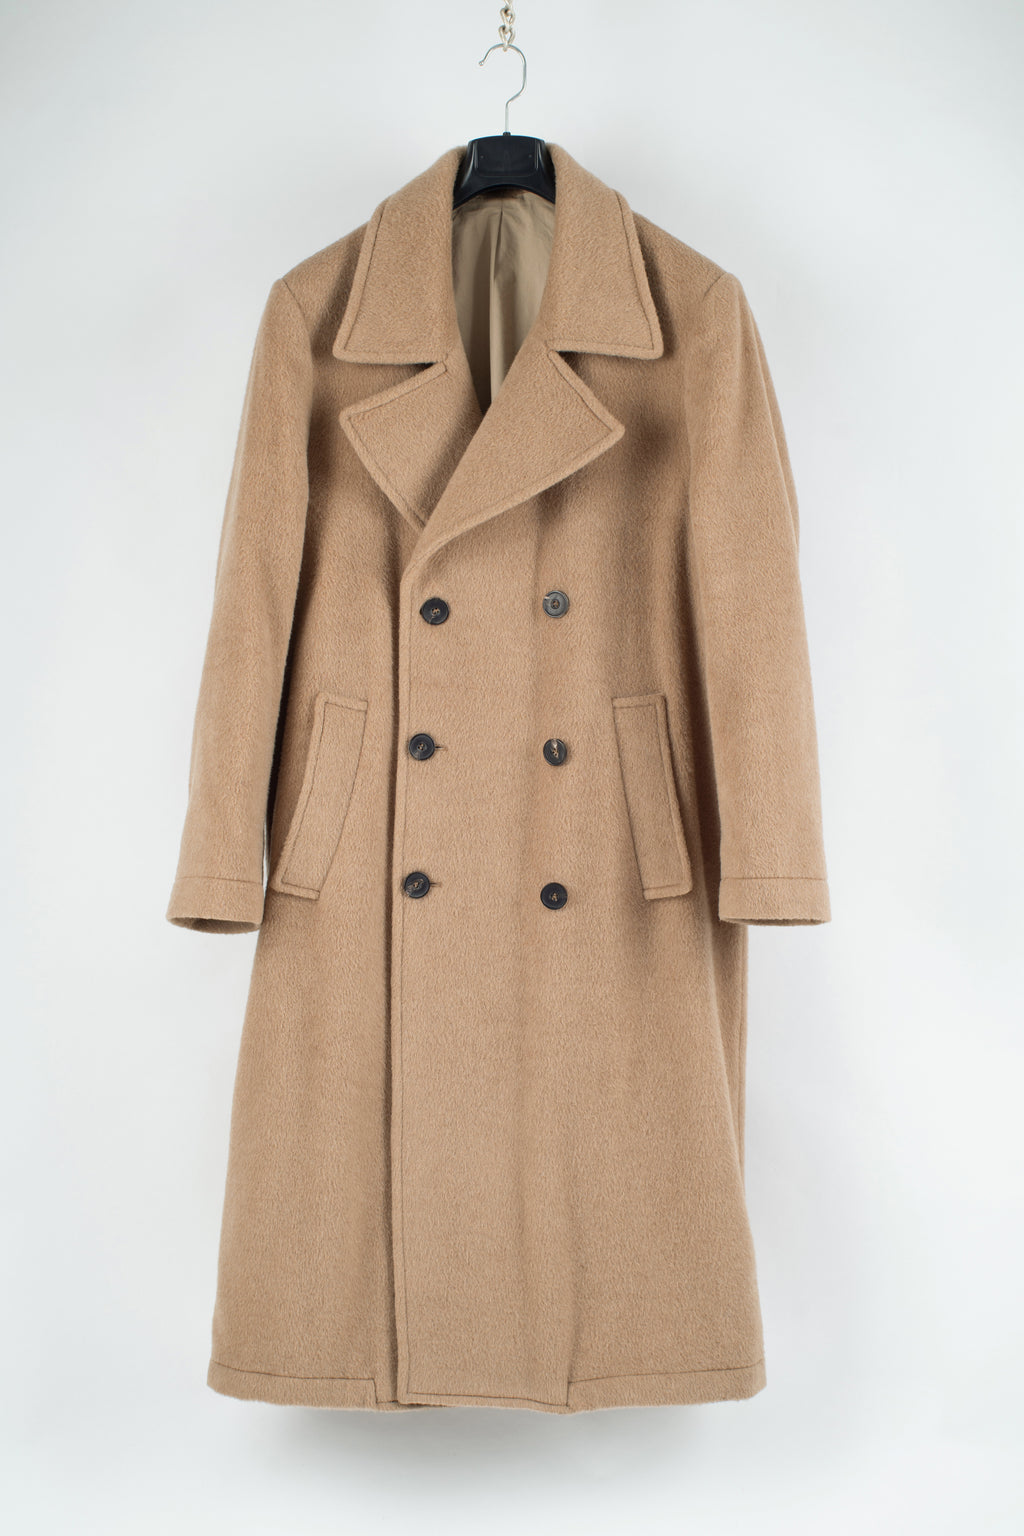 Zara Camel Brown Double Breasted Alpaca Blend Oversized Coat, M